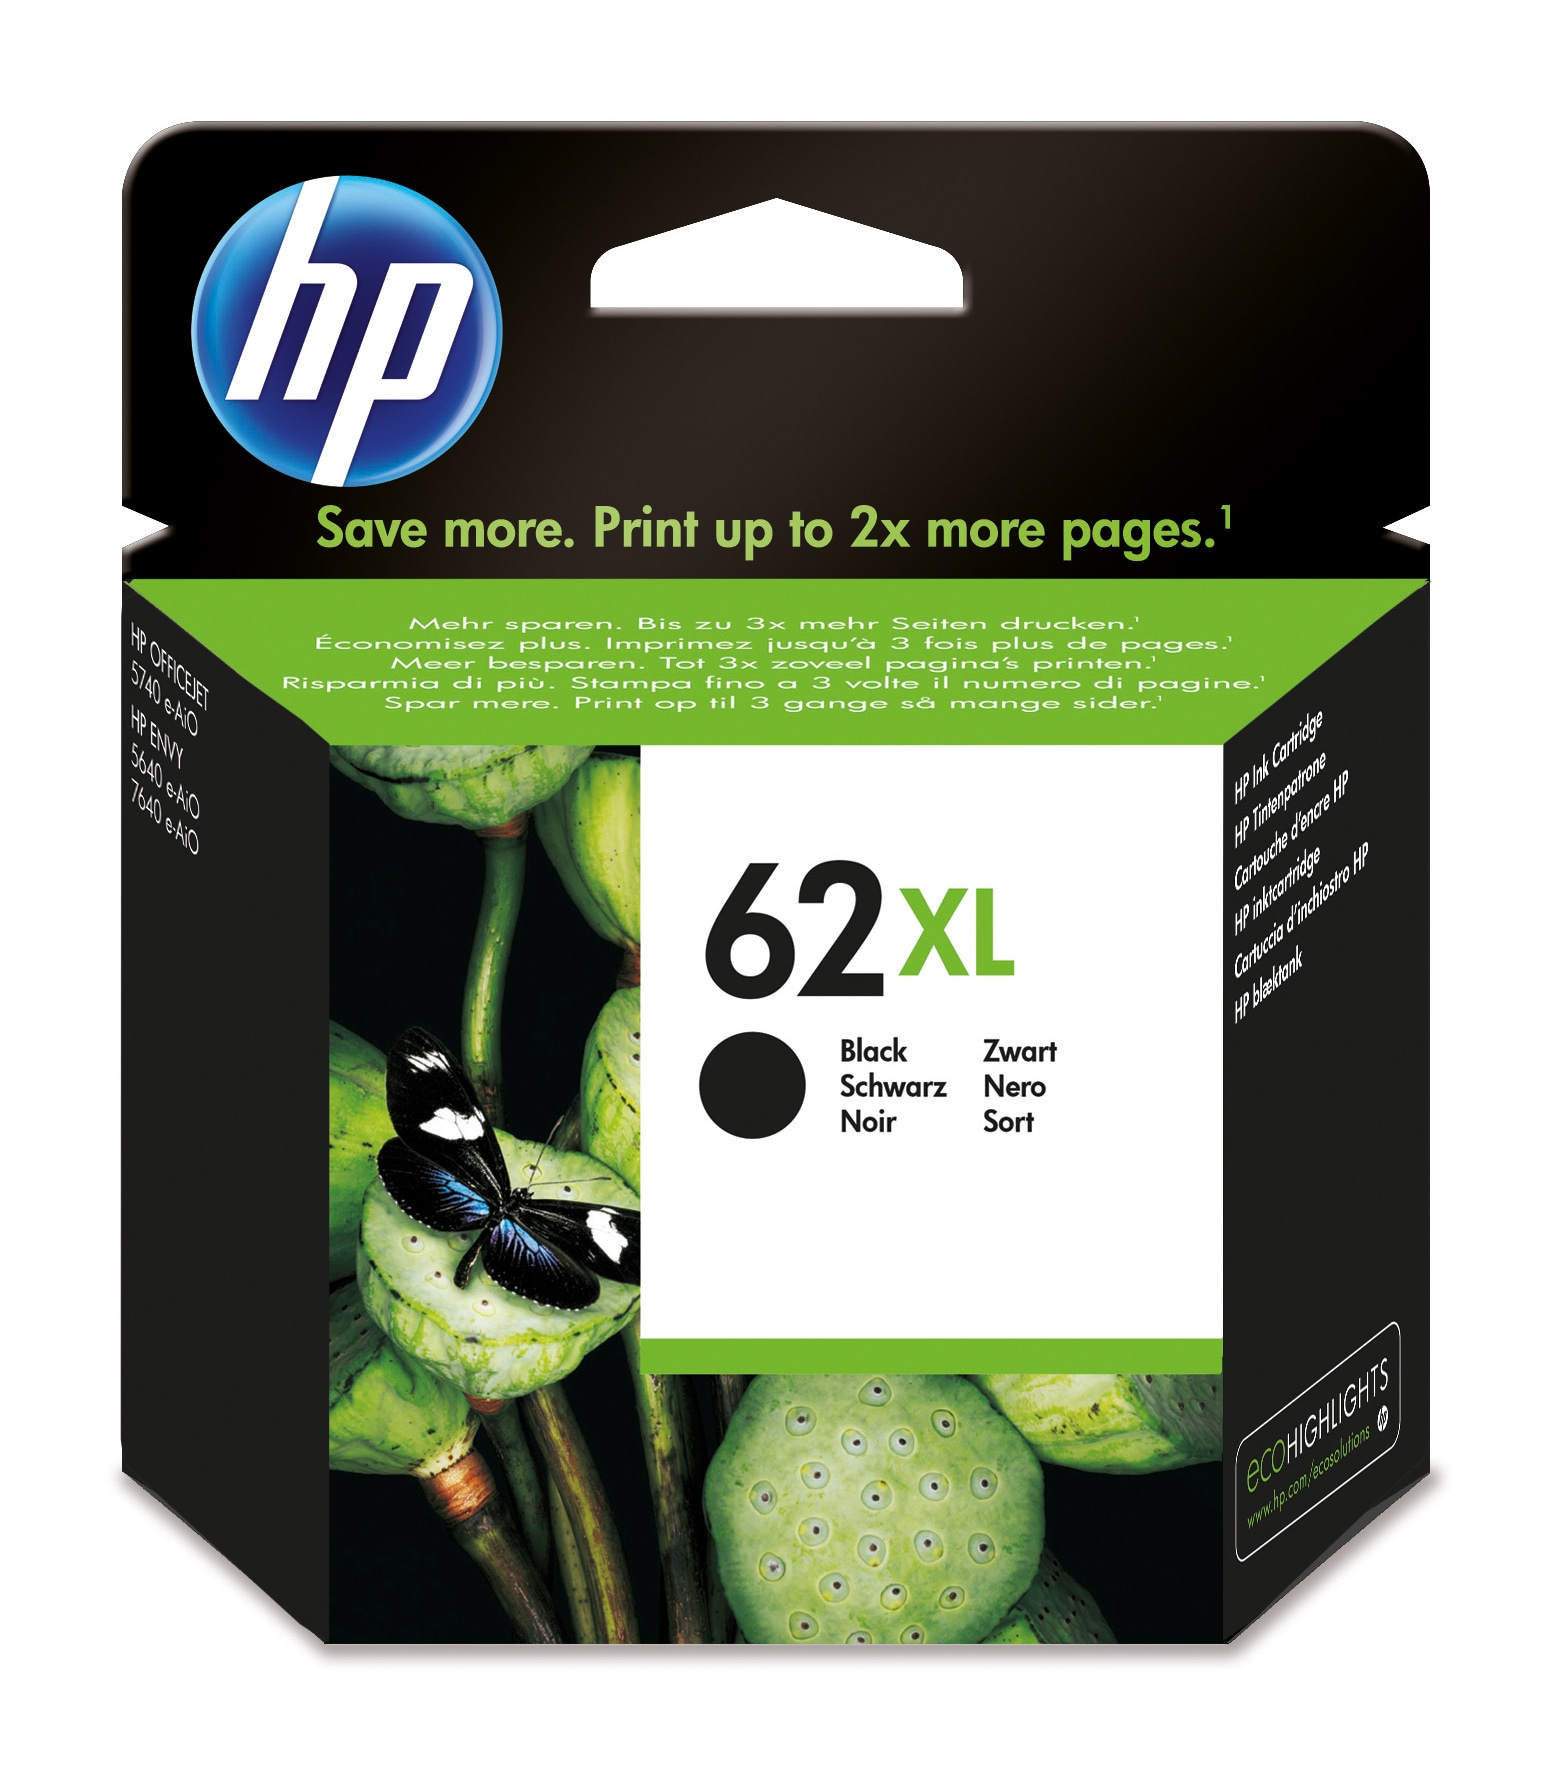 Hp - Inkjet Supply (pl1n) Mvs    Ink Cartridge 62xl Black            Black 62 Xl                         C2p05ae#uus